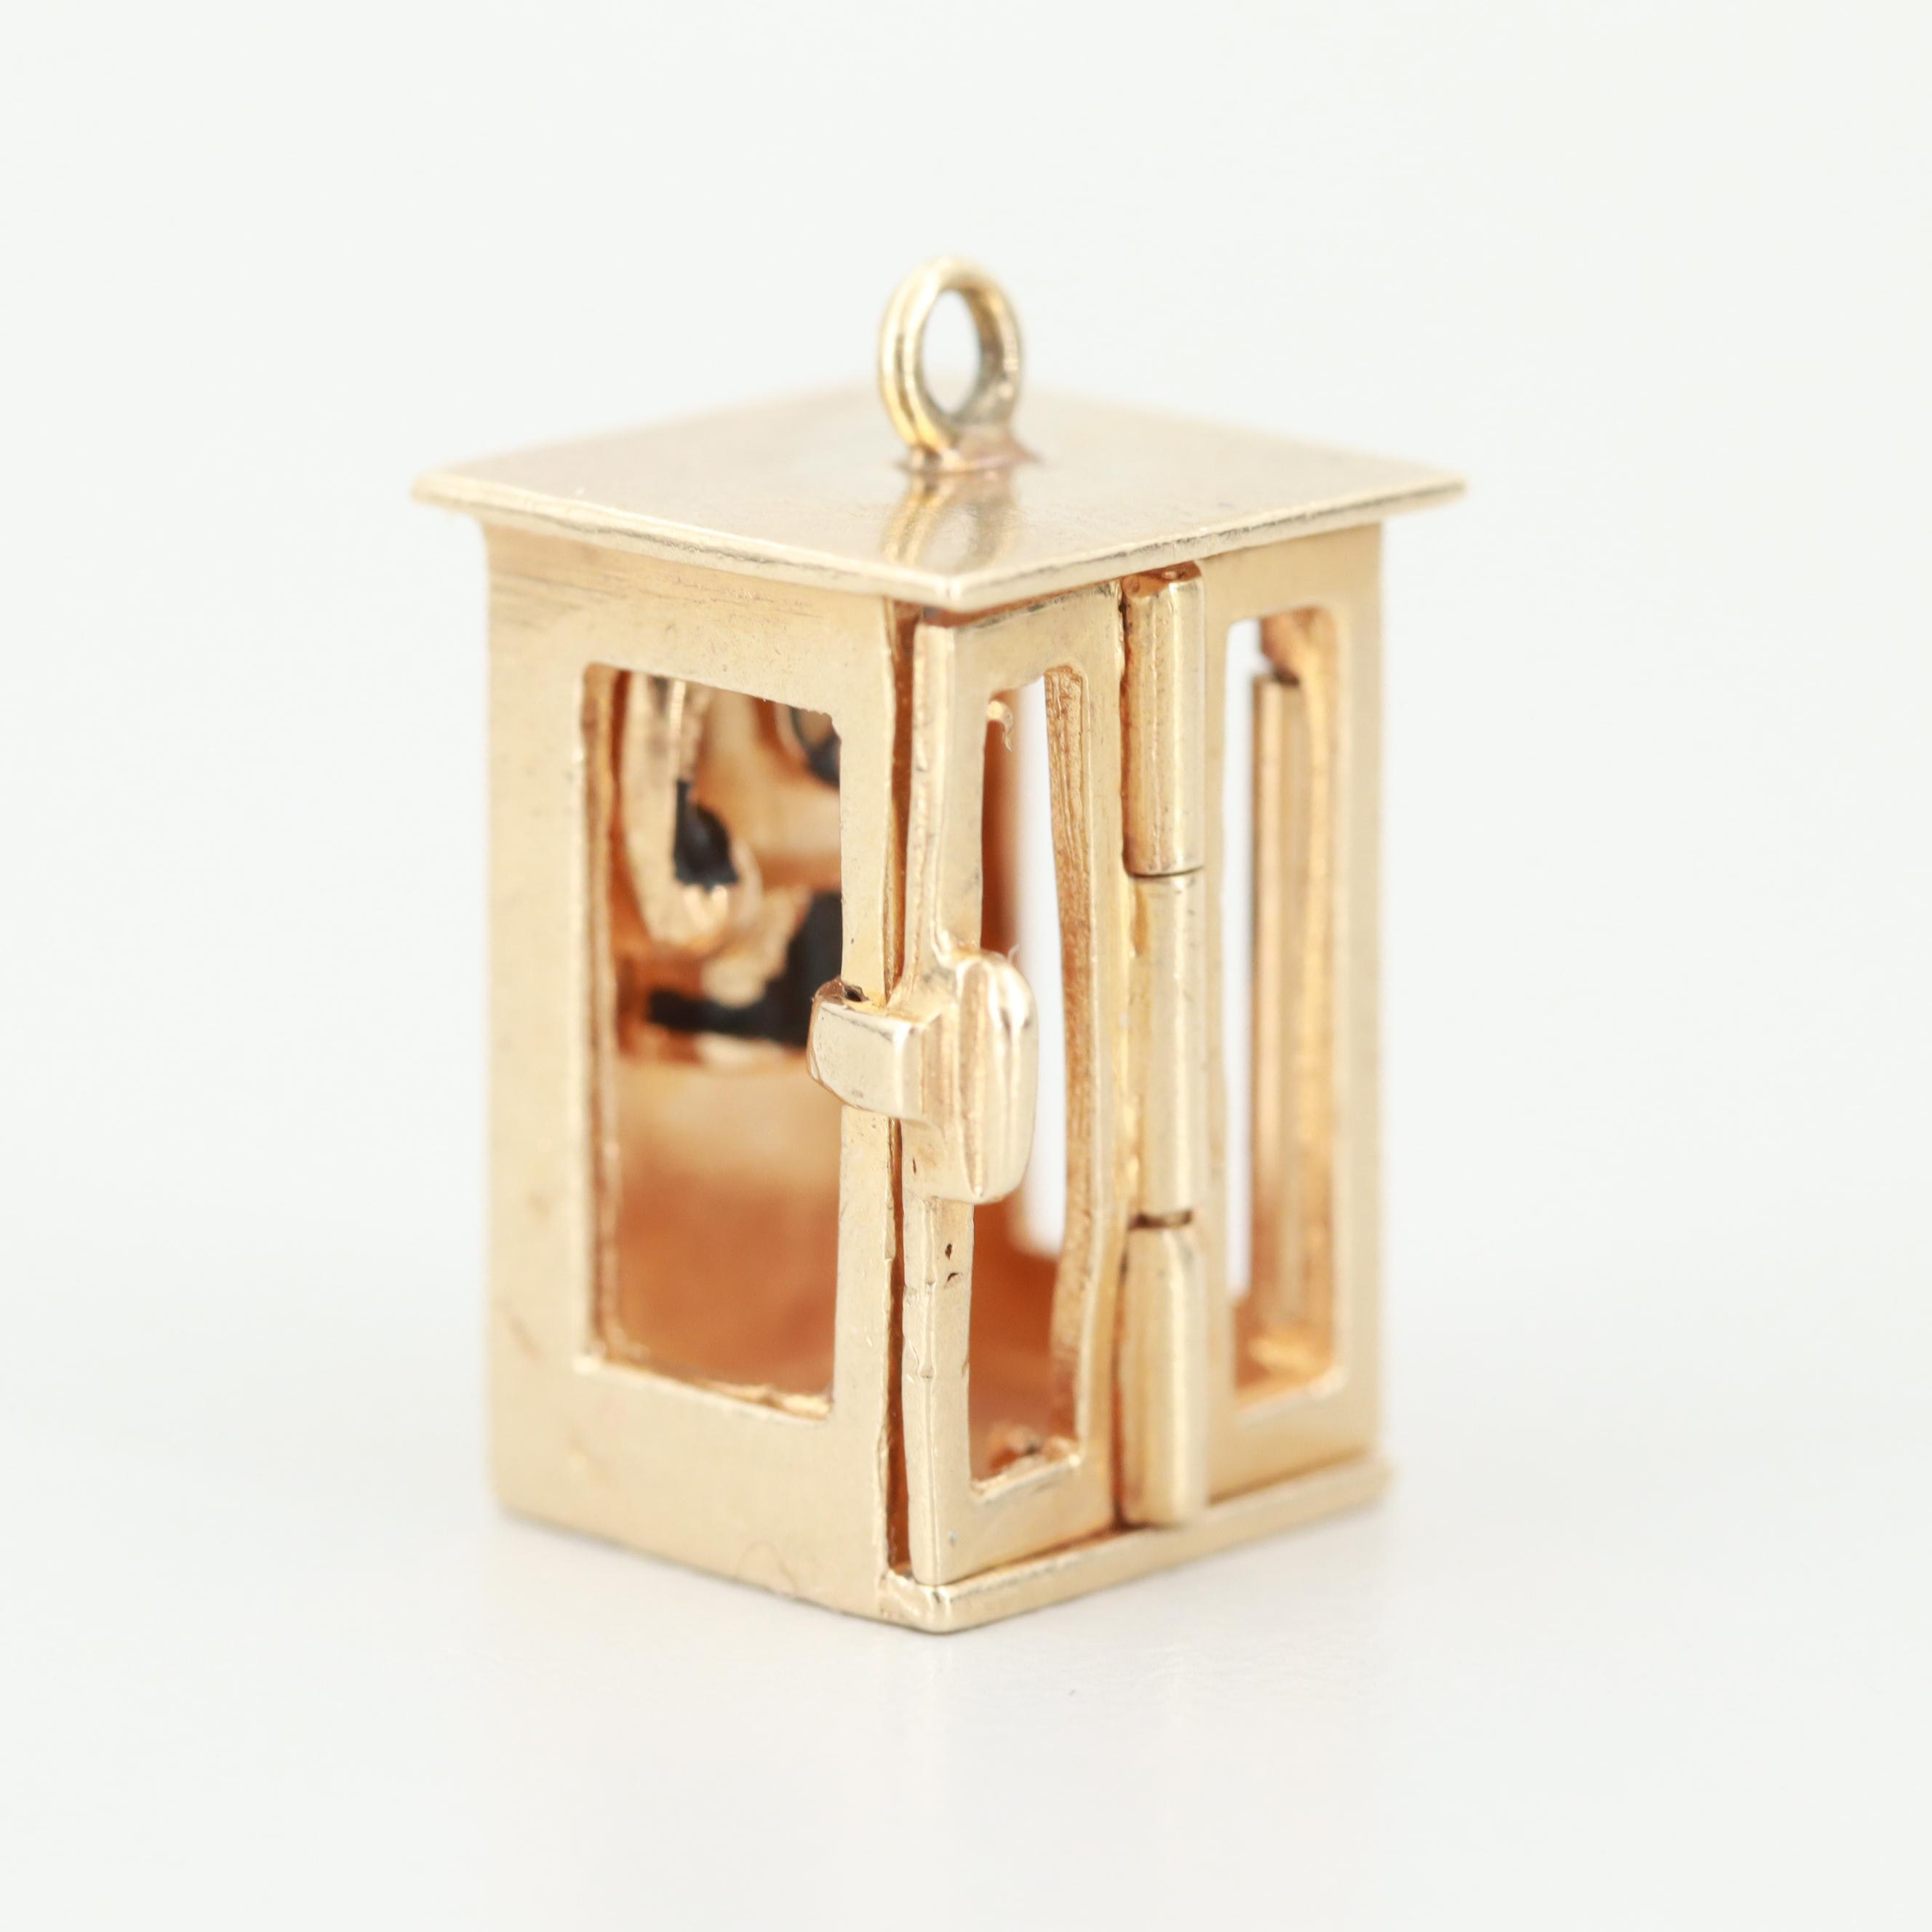 Vintage 14K Yellow Gold Articulating Enamel Phone Booth Charm